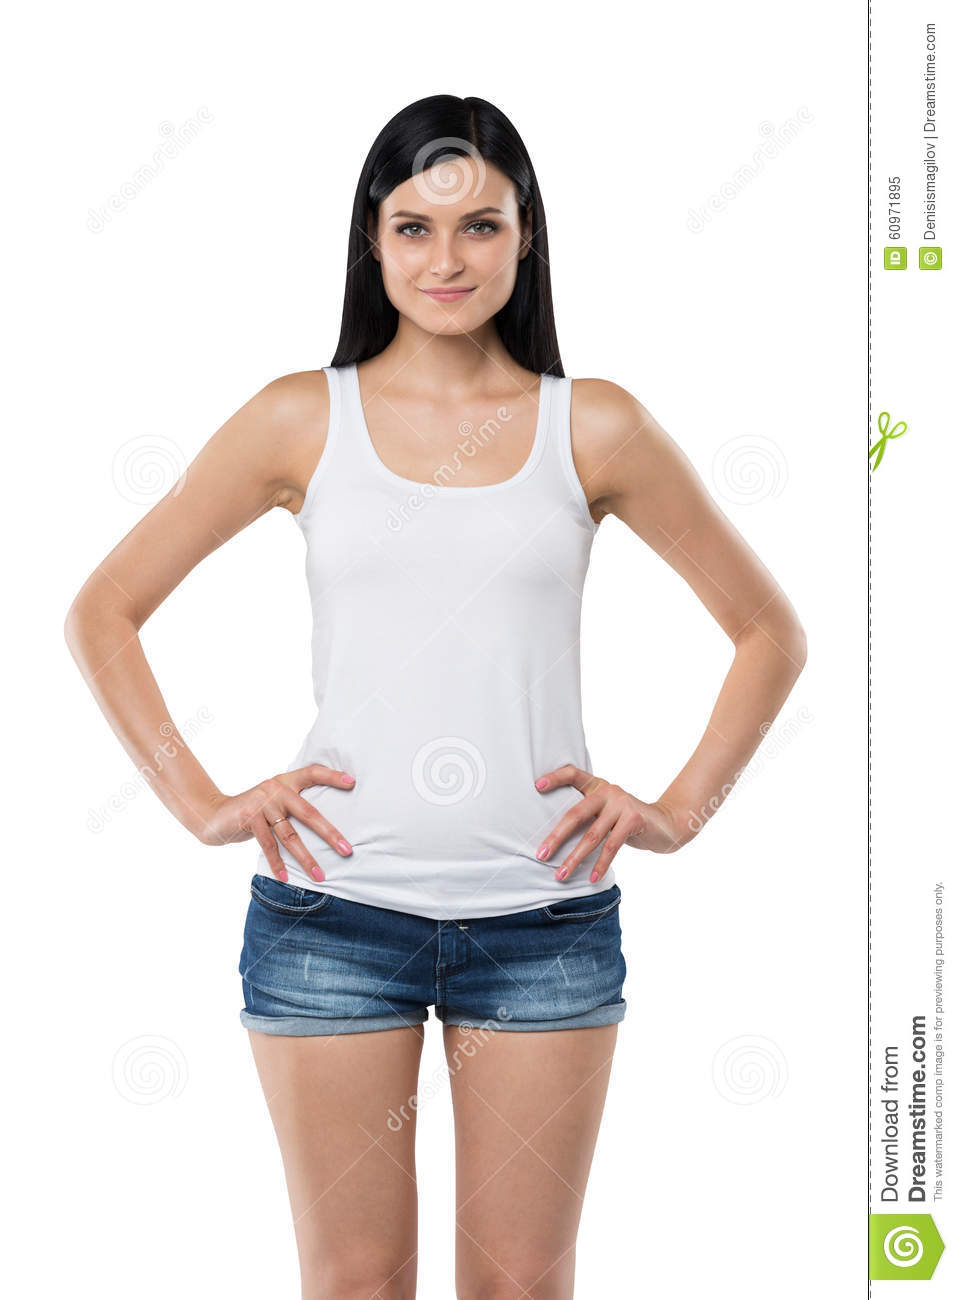 35eeebf1e5972 Woman Is In A White Tank Top And Blue Denim Shorts. Isolated. Stock ...